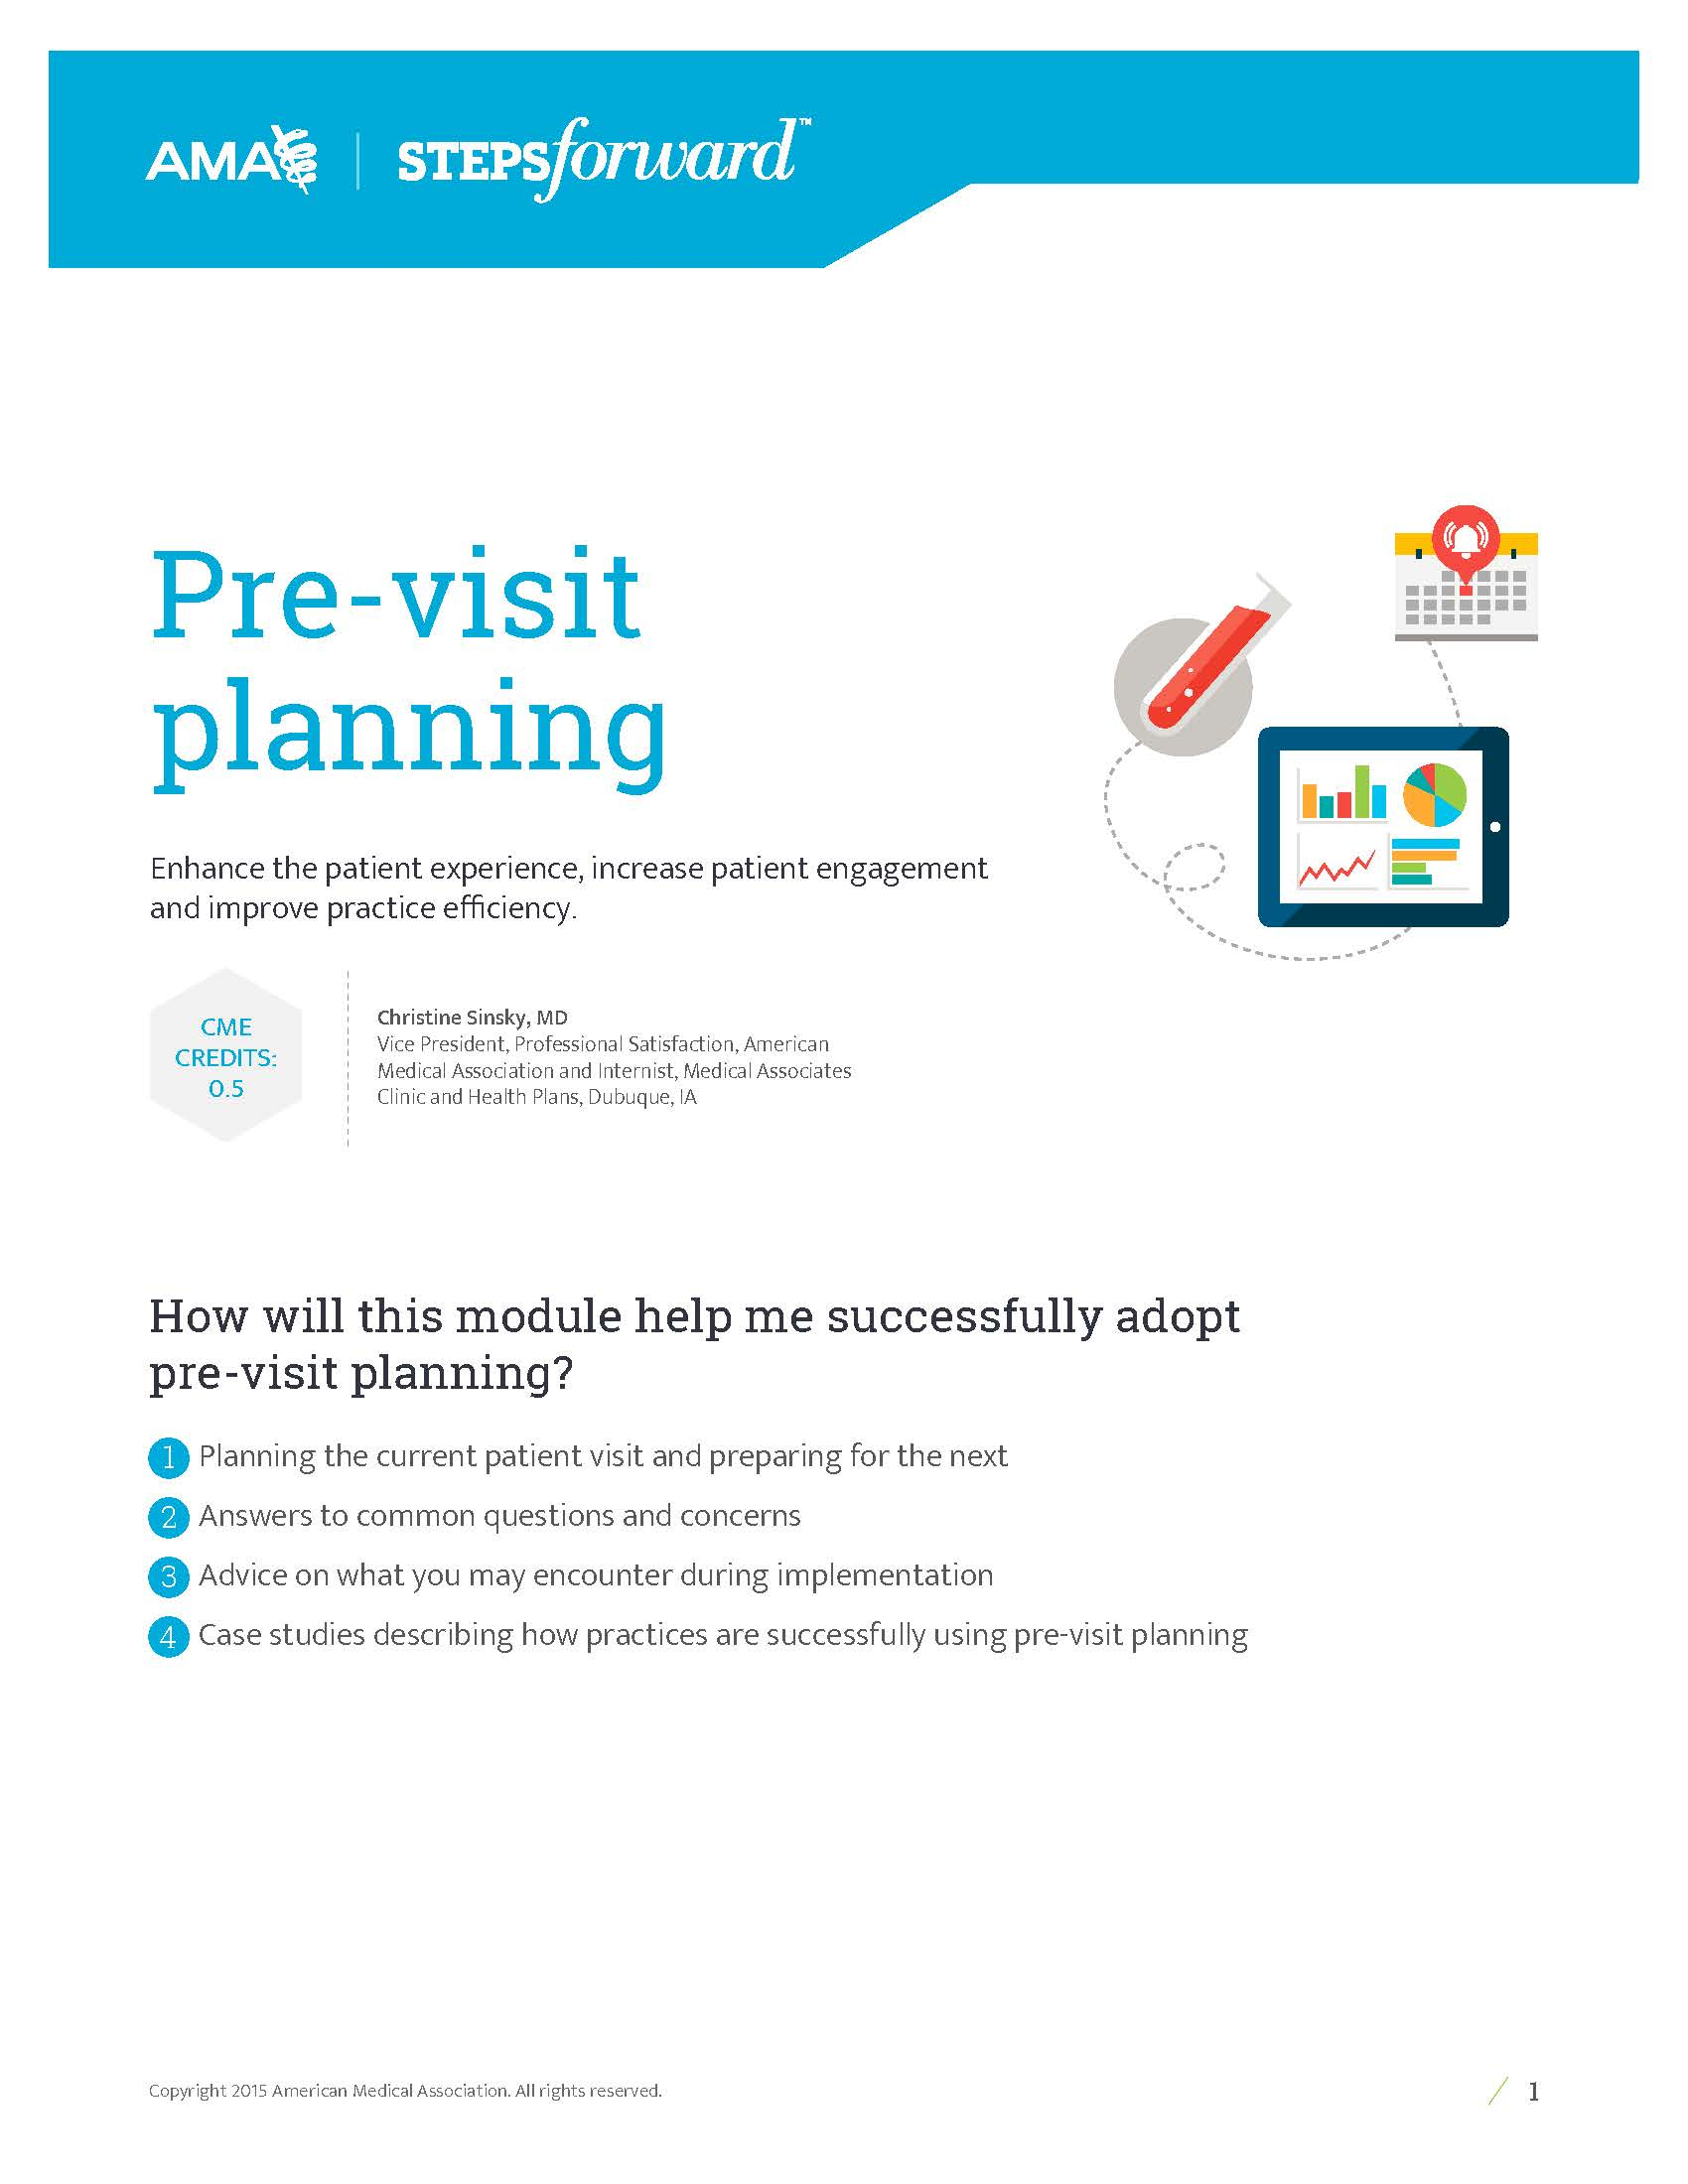 Pages from 27. Pre Visit Planning Enhance the Patient Experience article